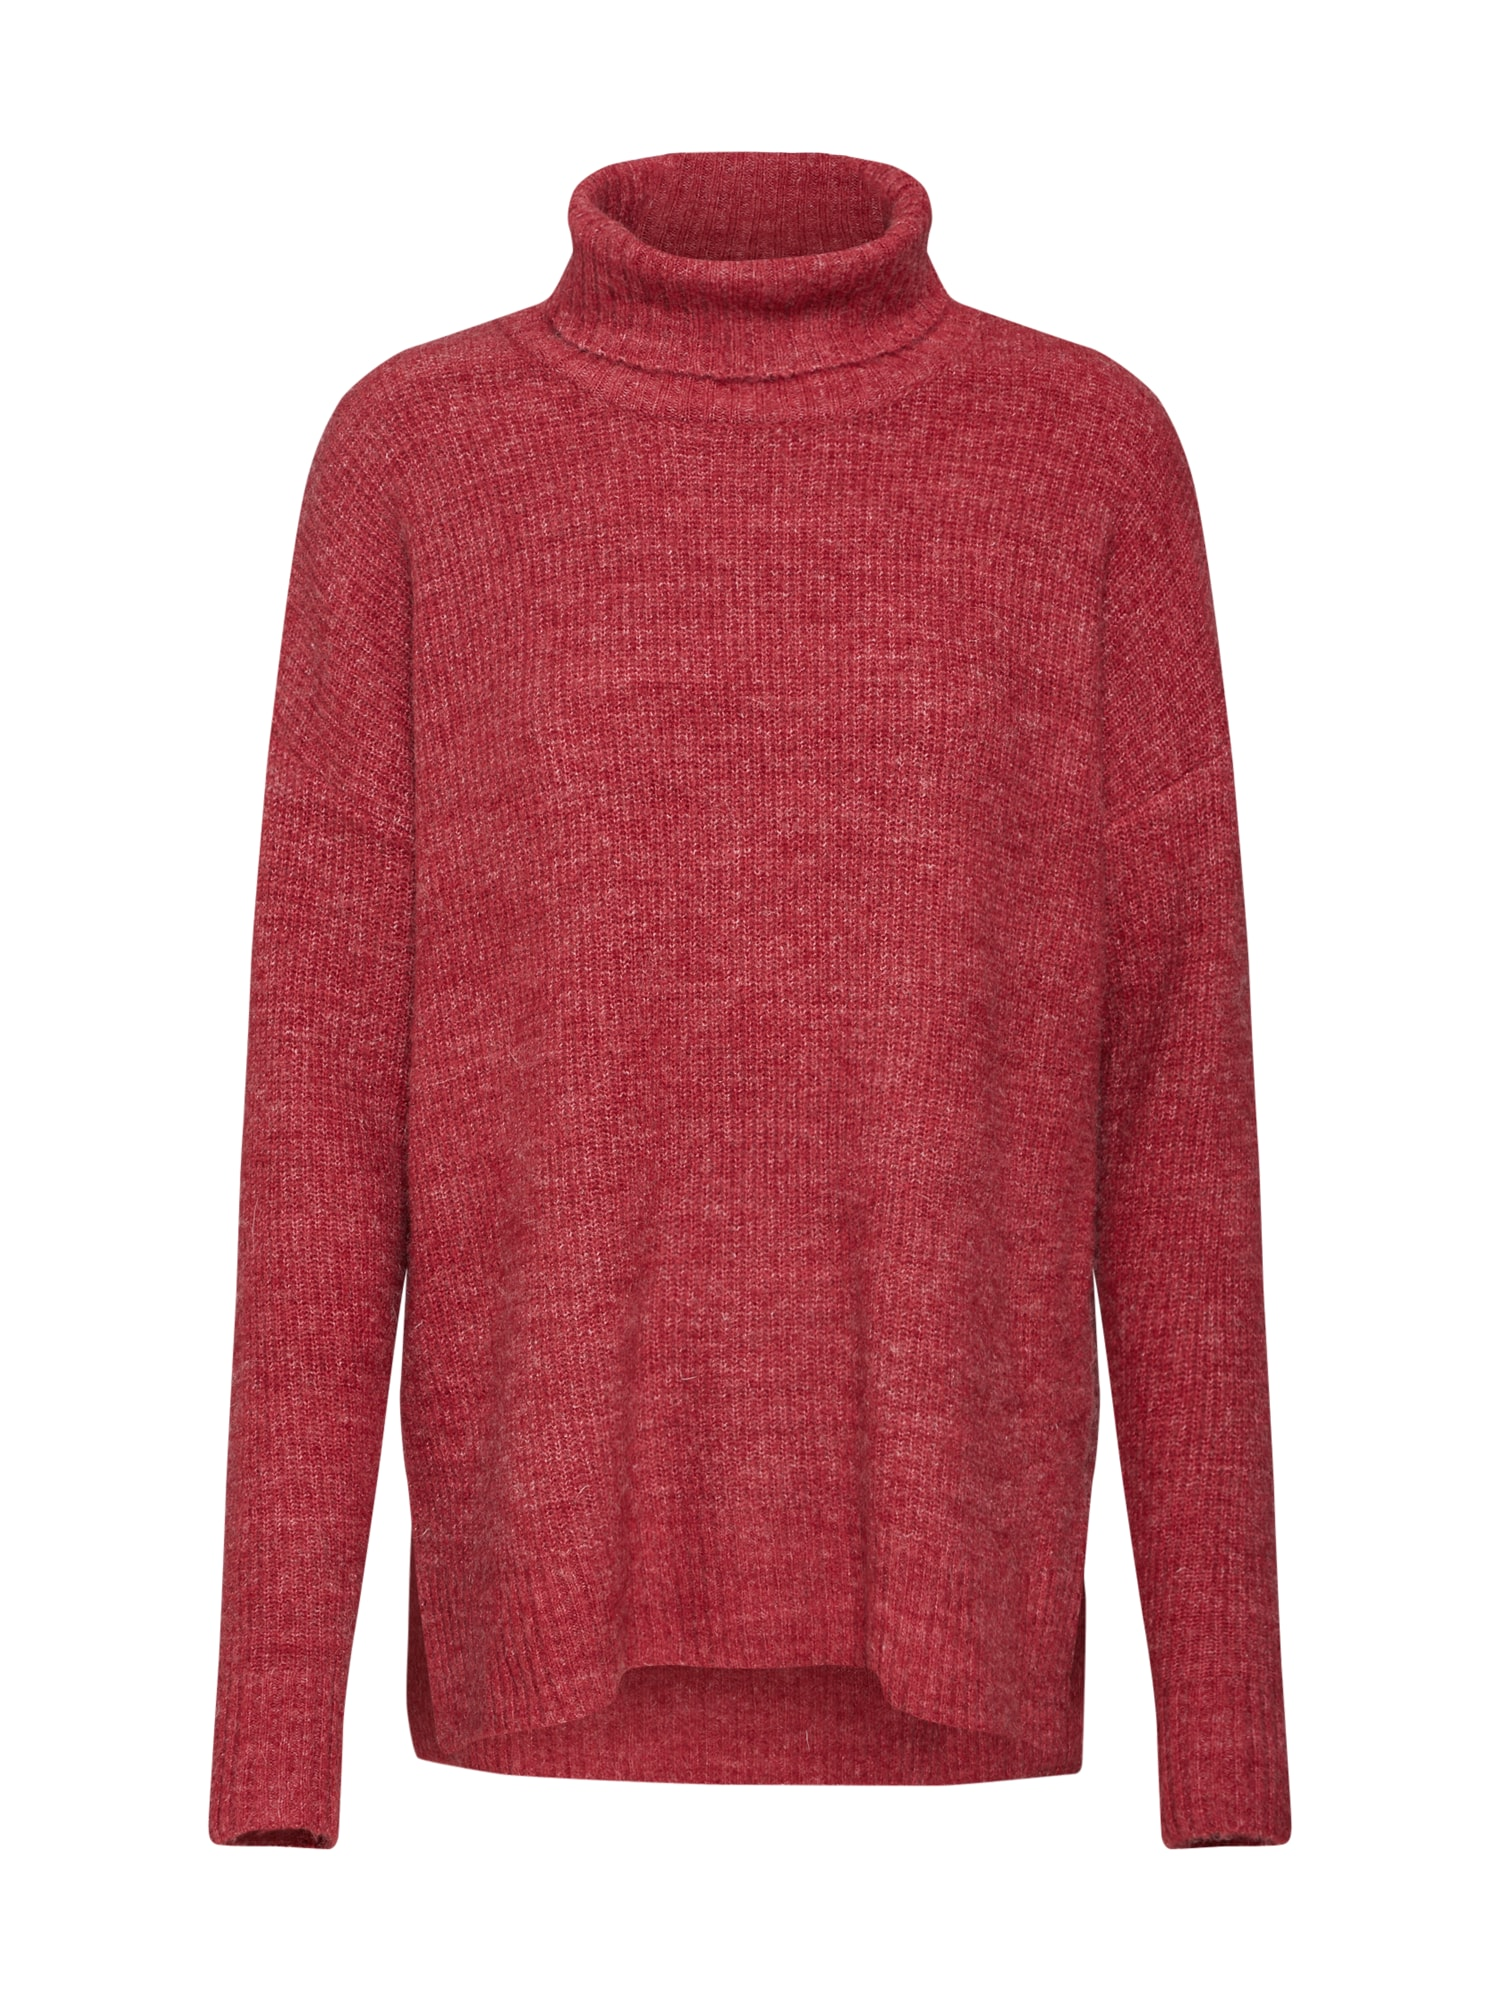 Svetr SESSIE ROLL NECK PULLOVER pink Sparkz